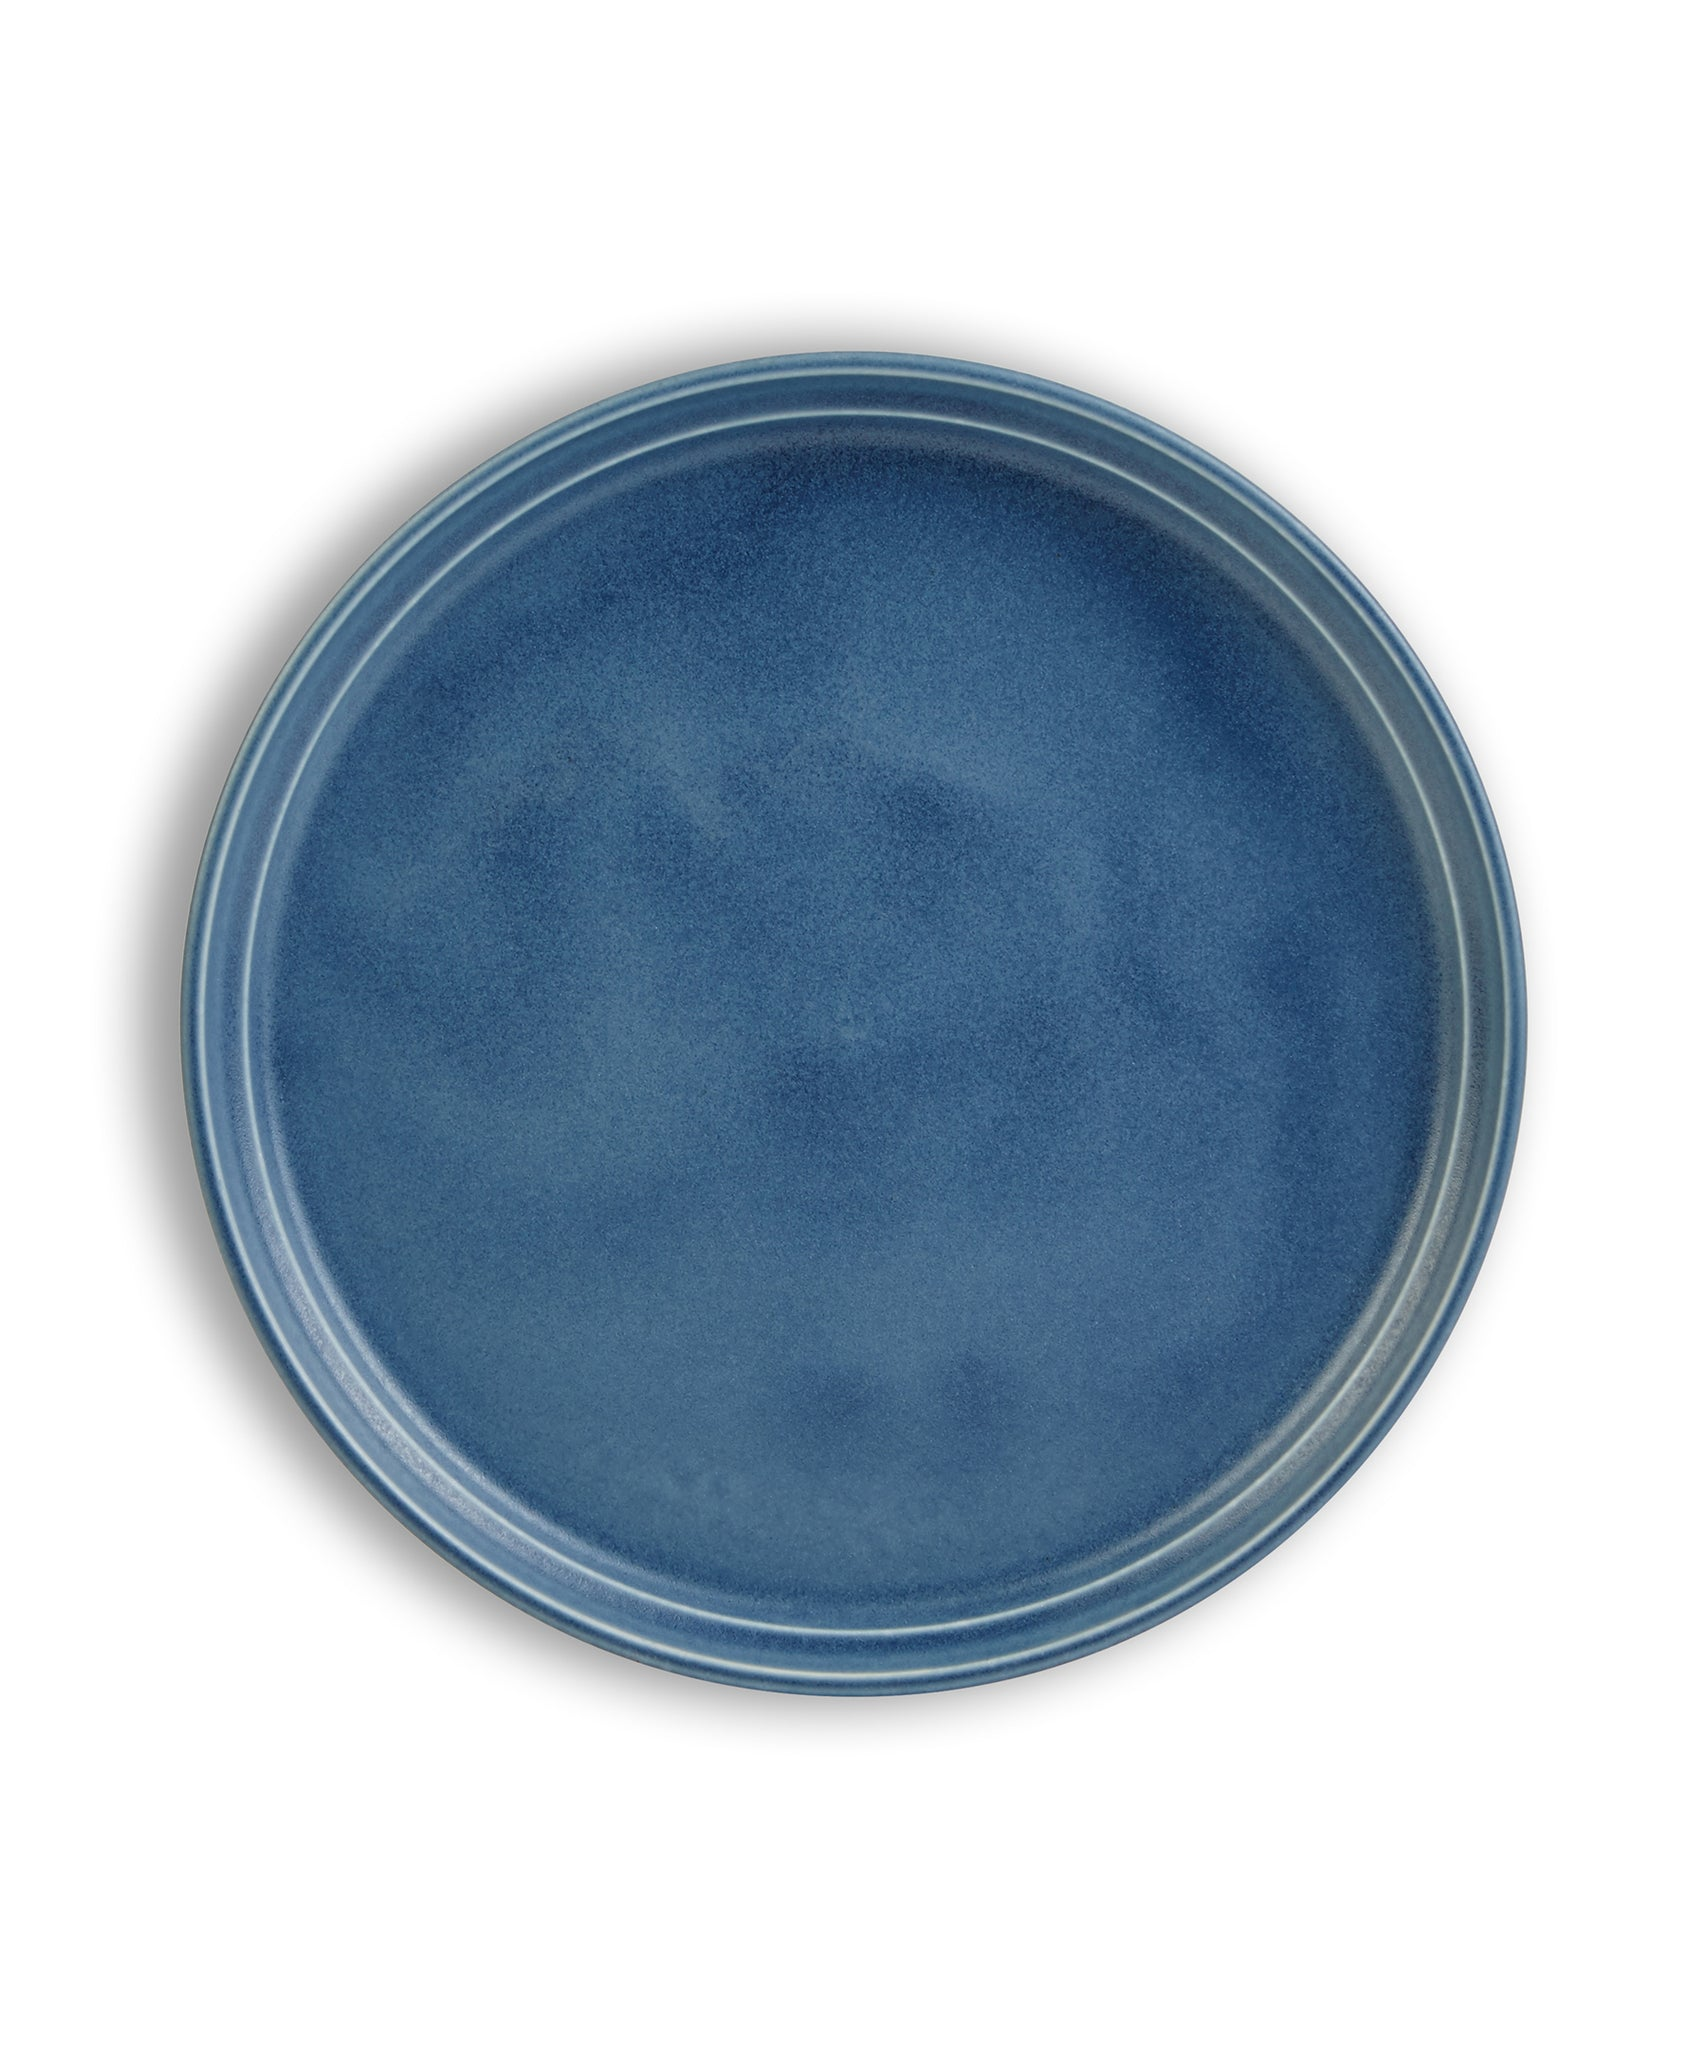 Fog Plate 200mm (Blue) by Kinto